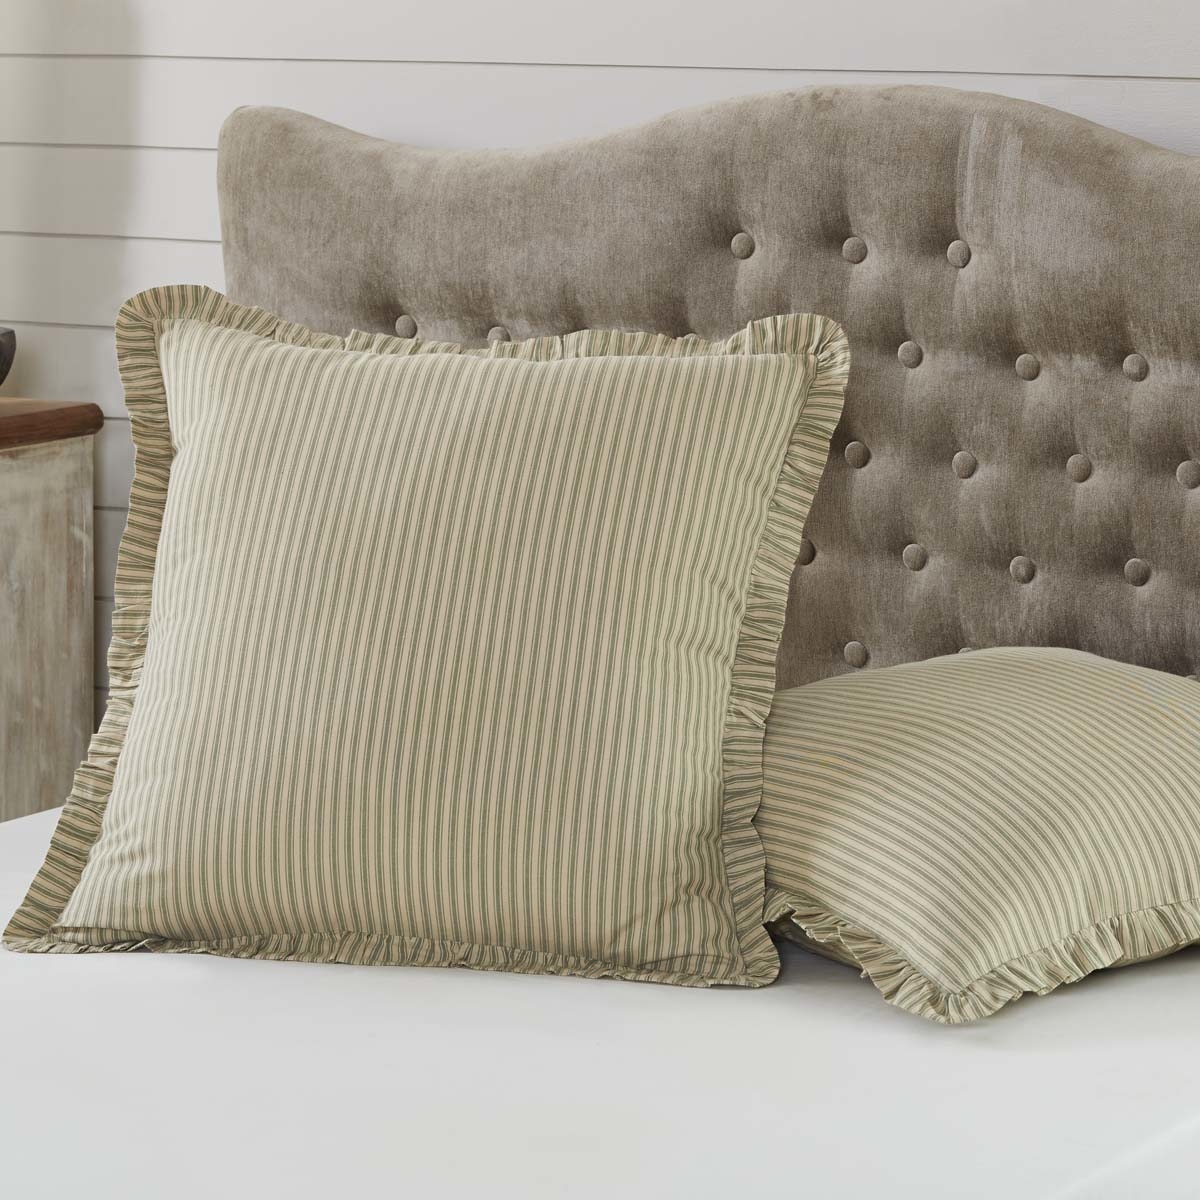 Farmhouse Bedding Kendra Stripe Euro Sham